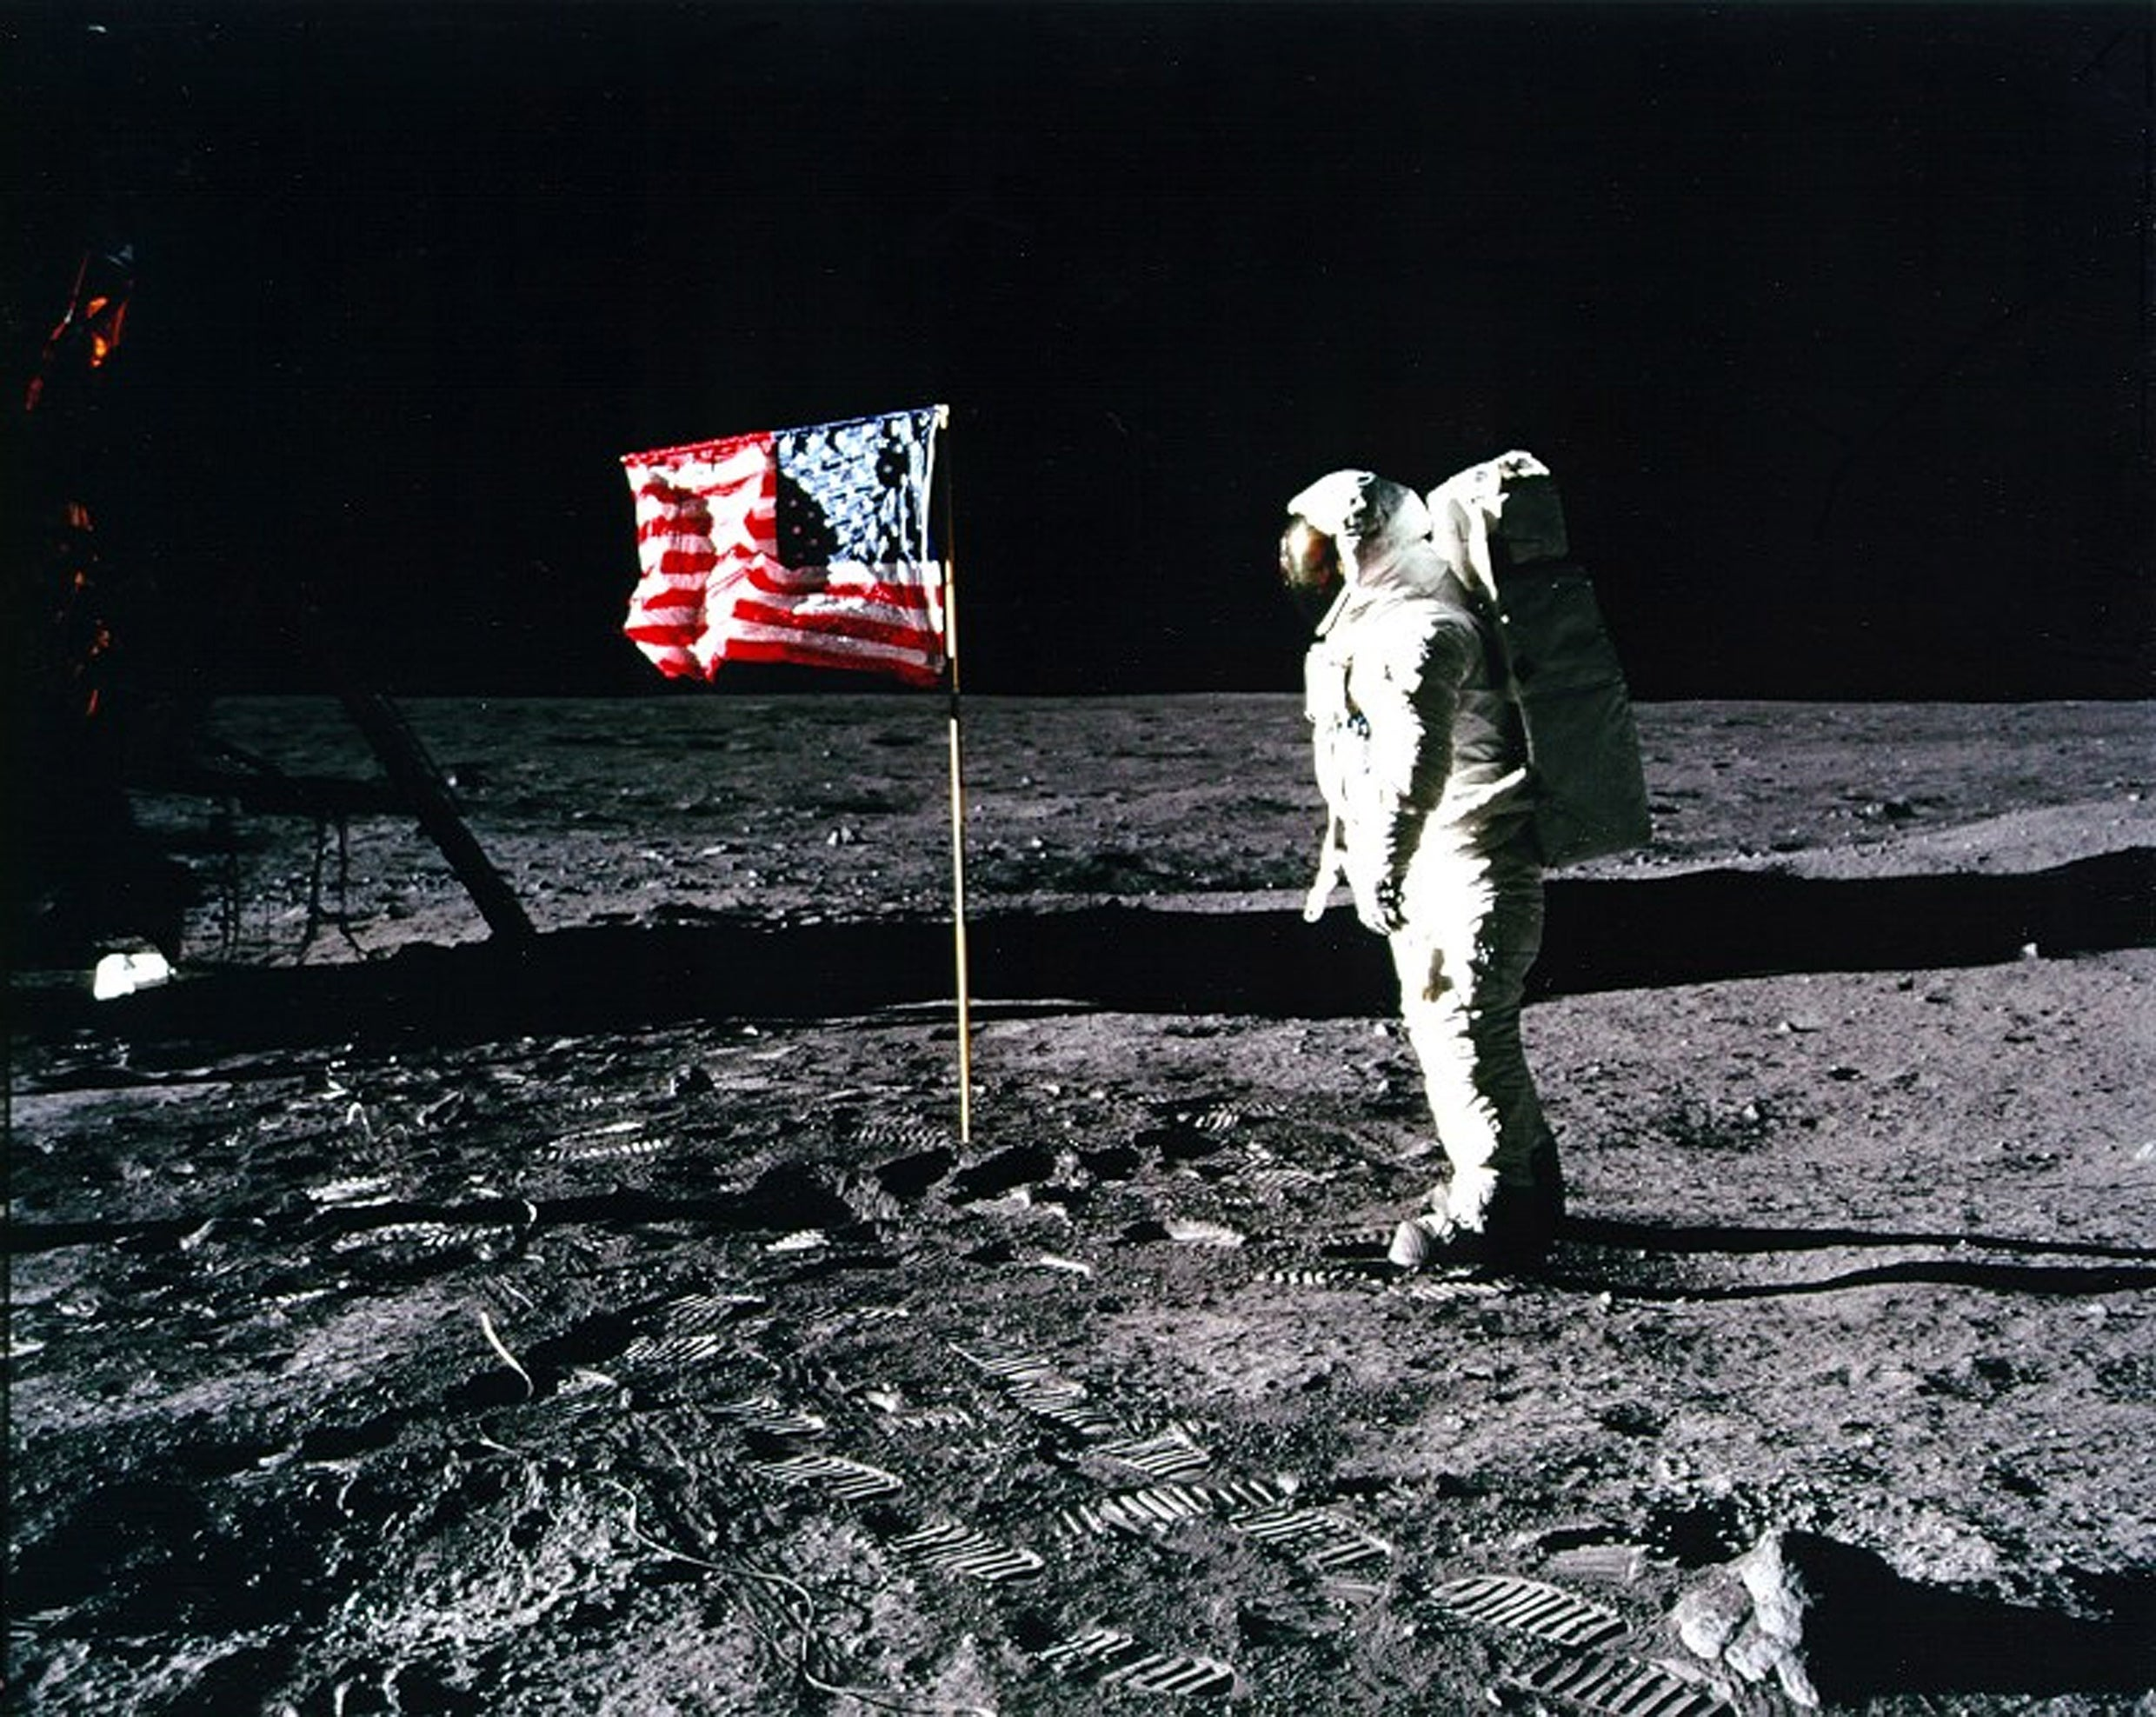 How moon landing conspiracy theories influenced the far-right